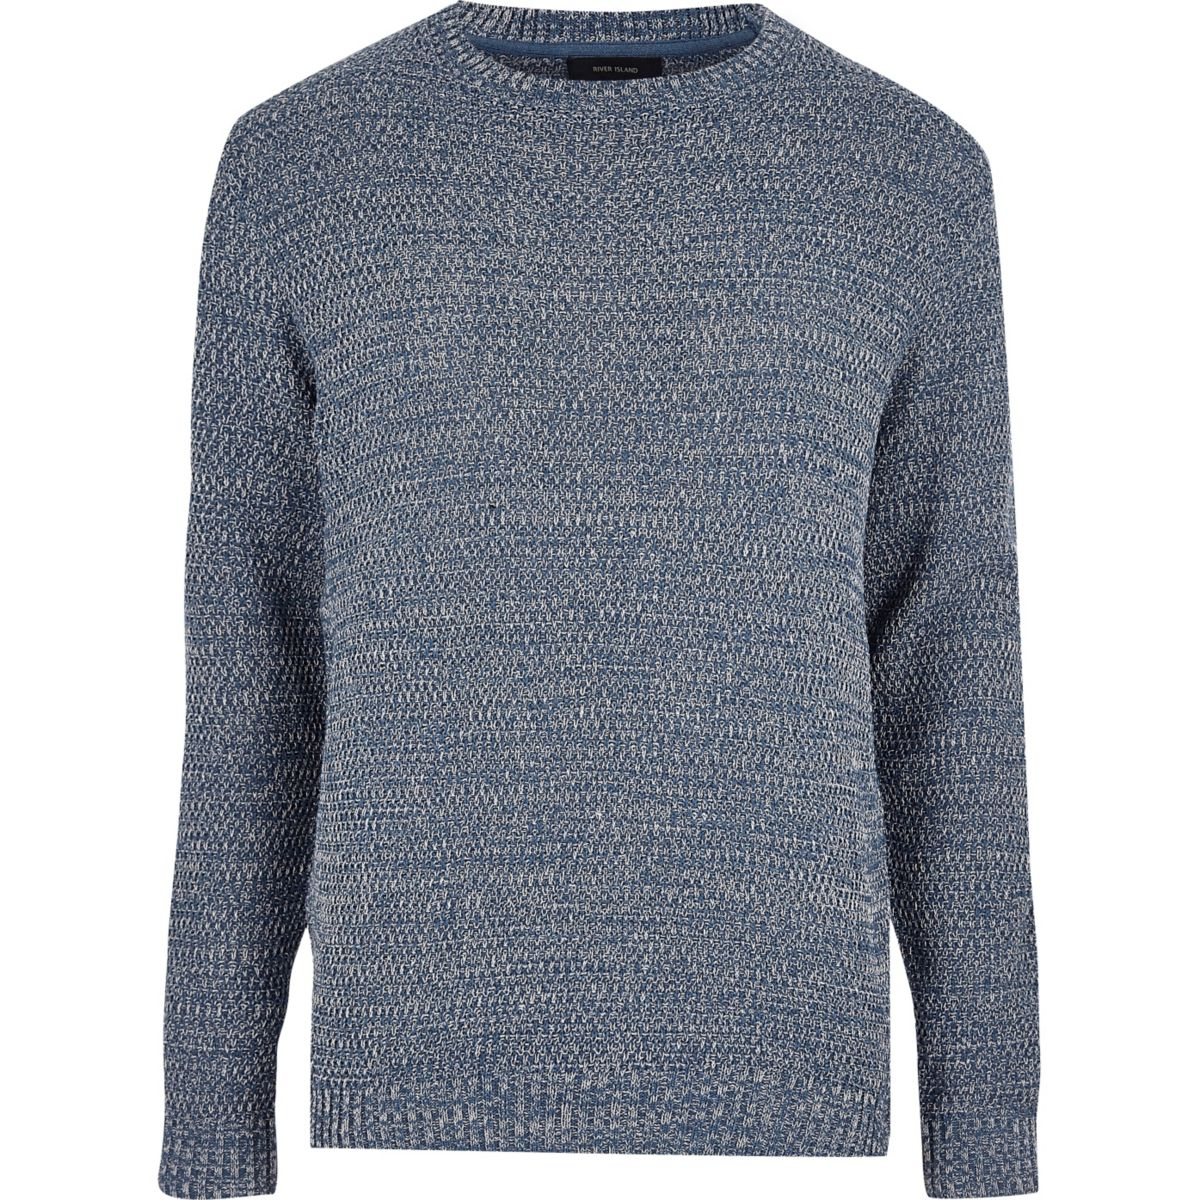 Blue textured knit jumper